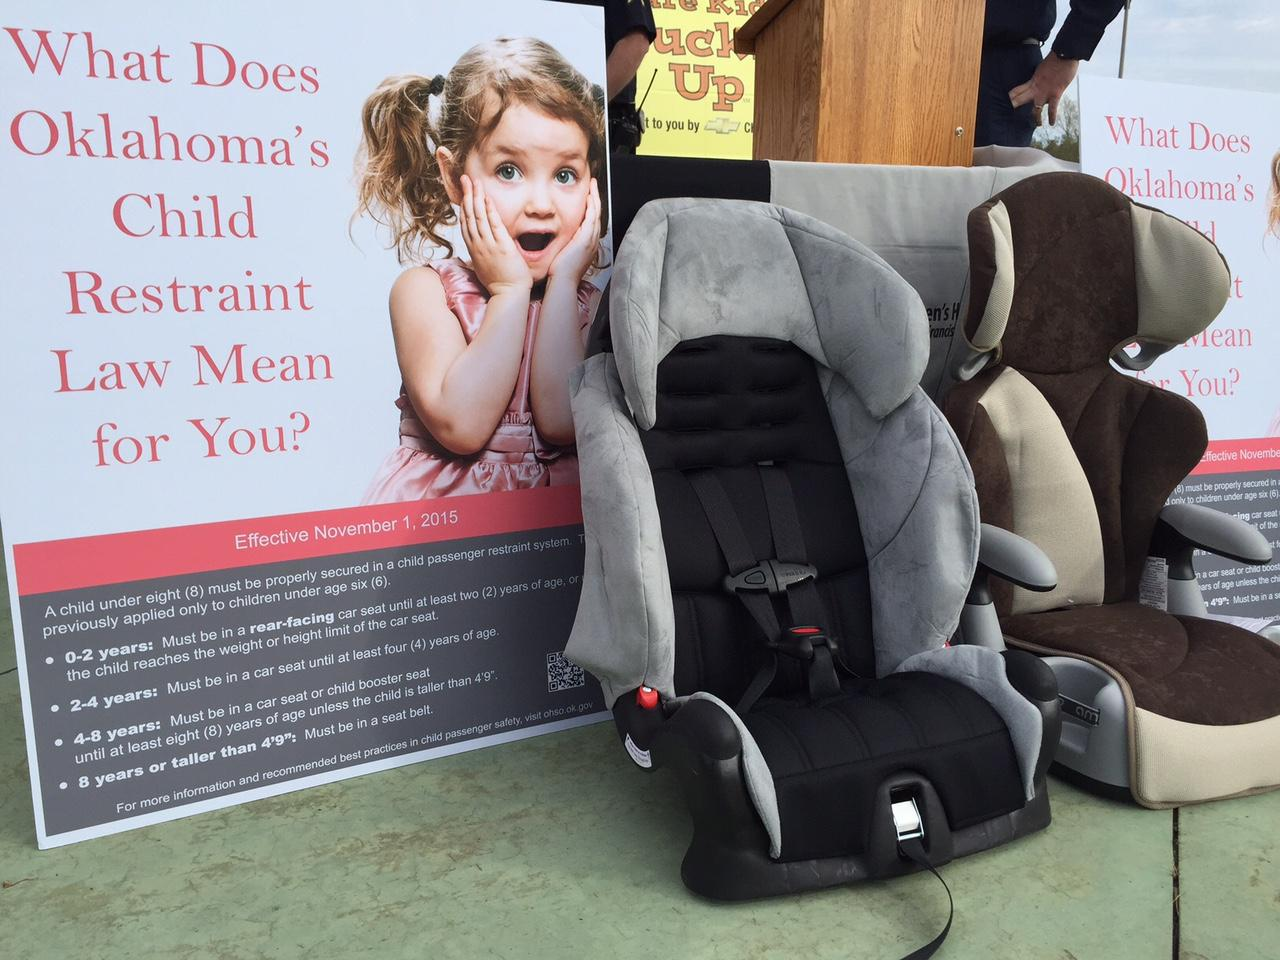 Oklahoma Advocacy Groups Discuss New Child Restraint Law | Public ...